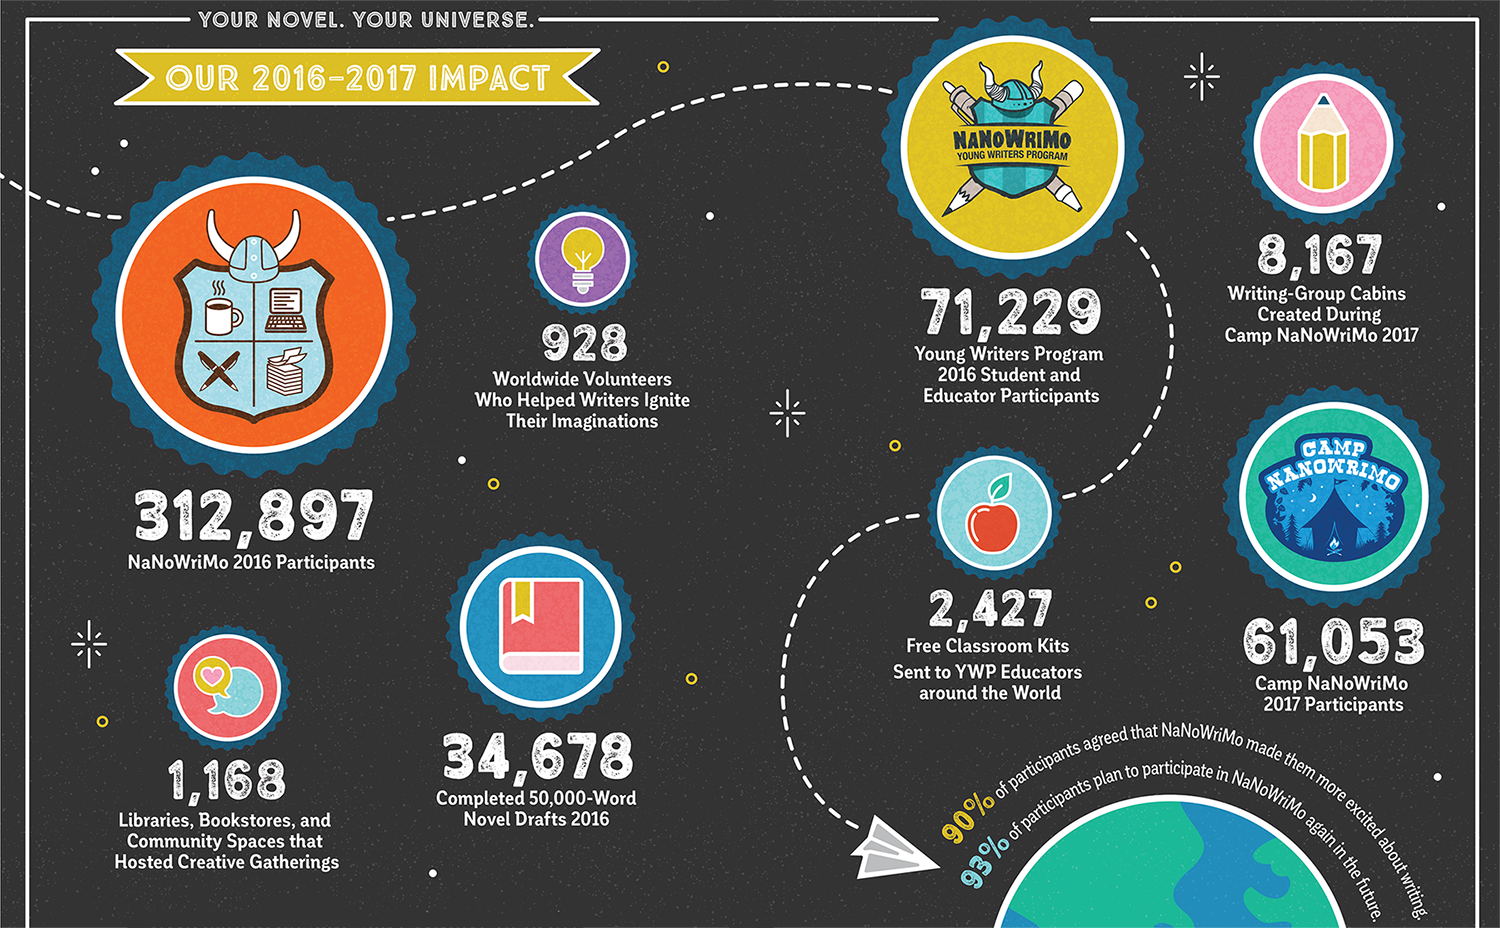 NaNoWriMo's Impact in 2016: 312,897 novelists including 71,229 Young Writers Program participants. 928 volunteers on six continents and 1,168 libraries and community centers.